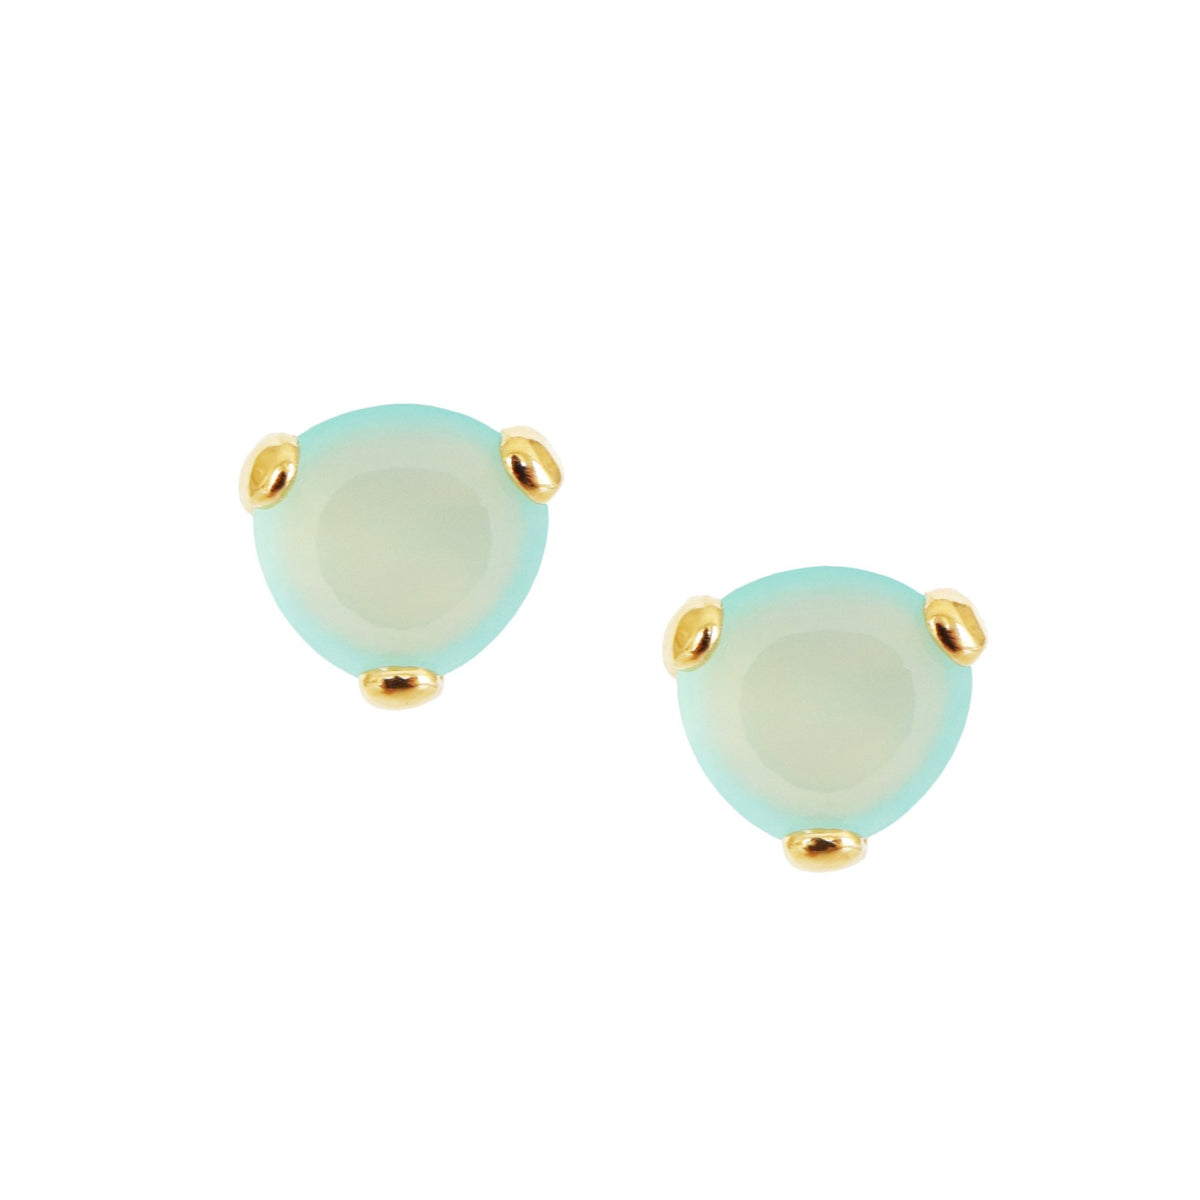 MINI FEARLESS STUDS - AQUA CHALCEDONY & GOLD - SO PRETTY CARA COTTER